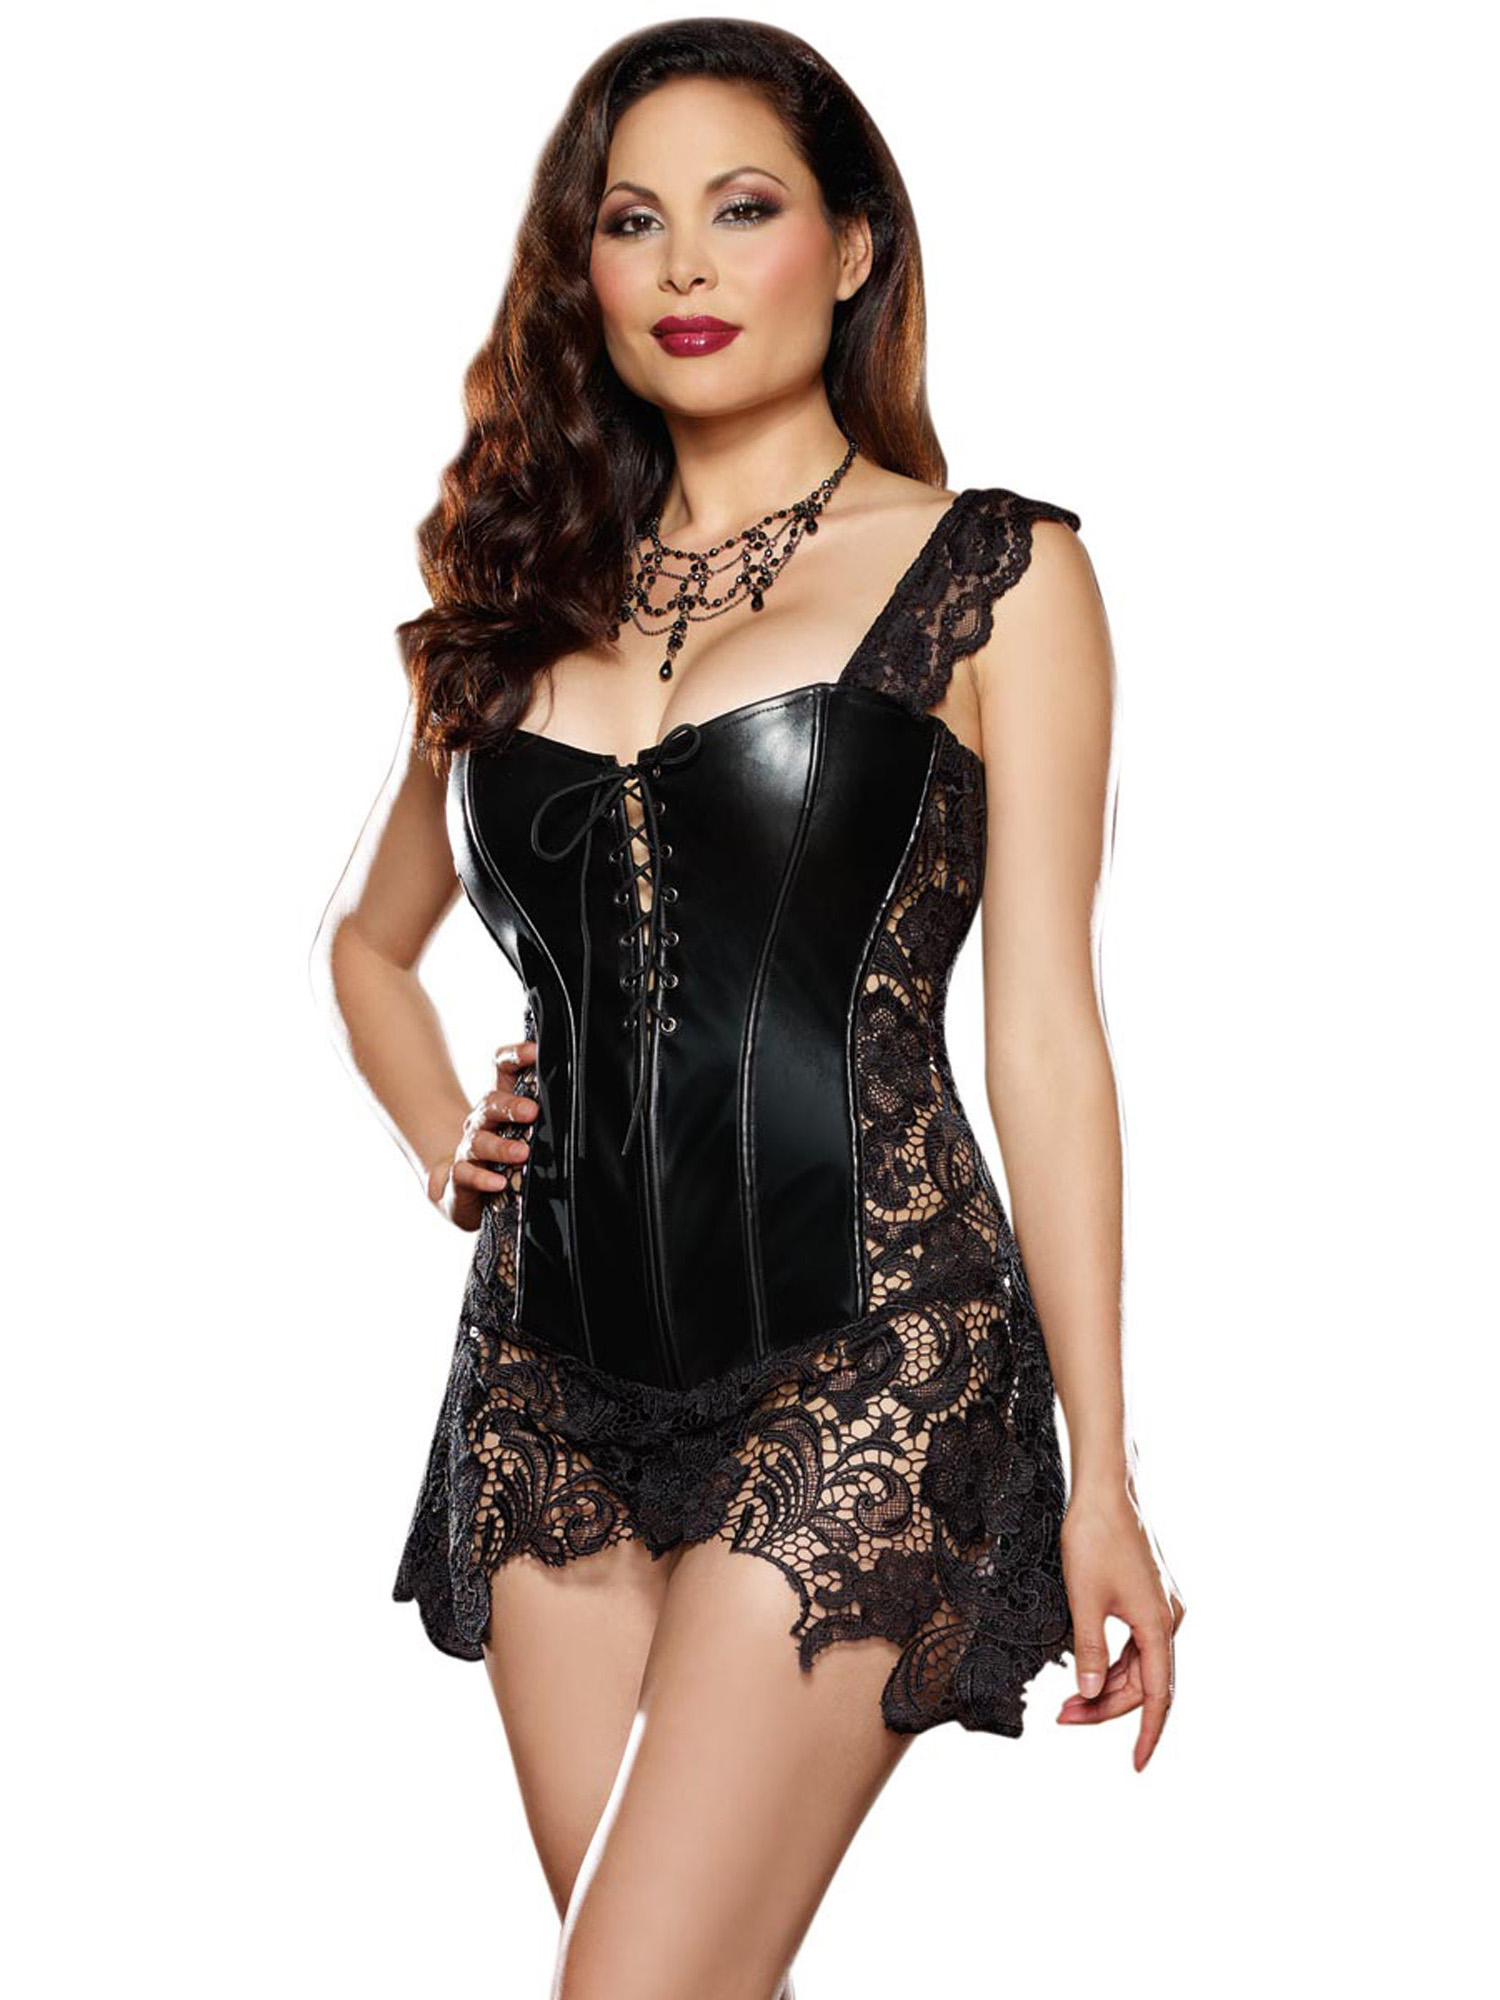 Plus Size Faux Leather and Lace Corset Lingerie | eBay